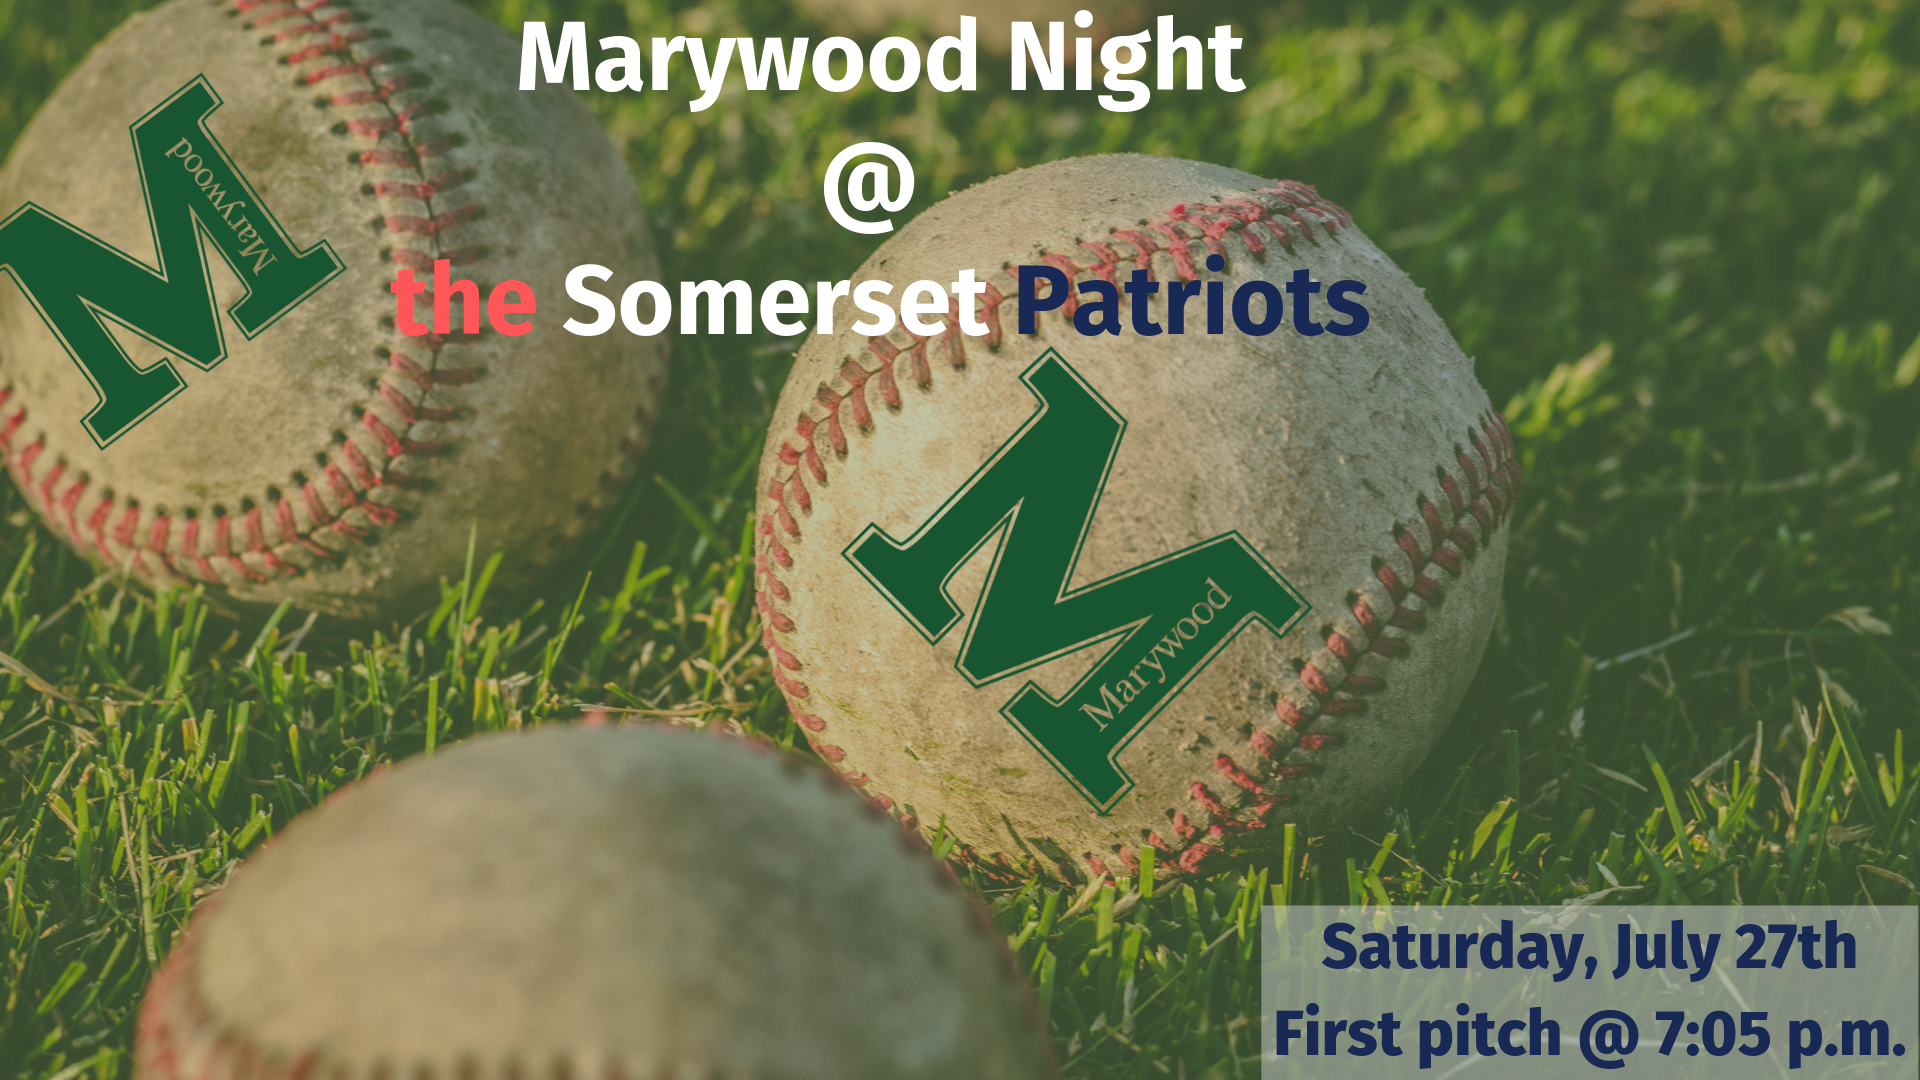 Marywood Night at the Somerset Patriots - Saturday, July 27th (game starts at 7:05 p.m.)